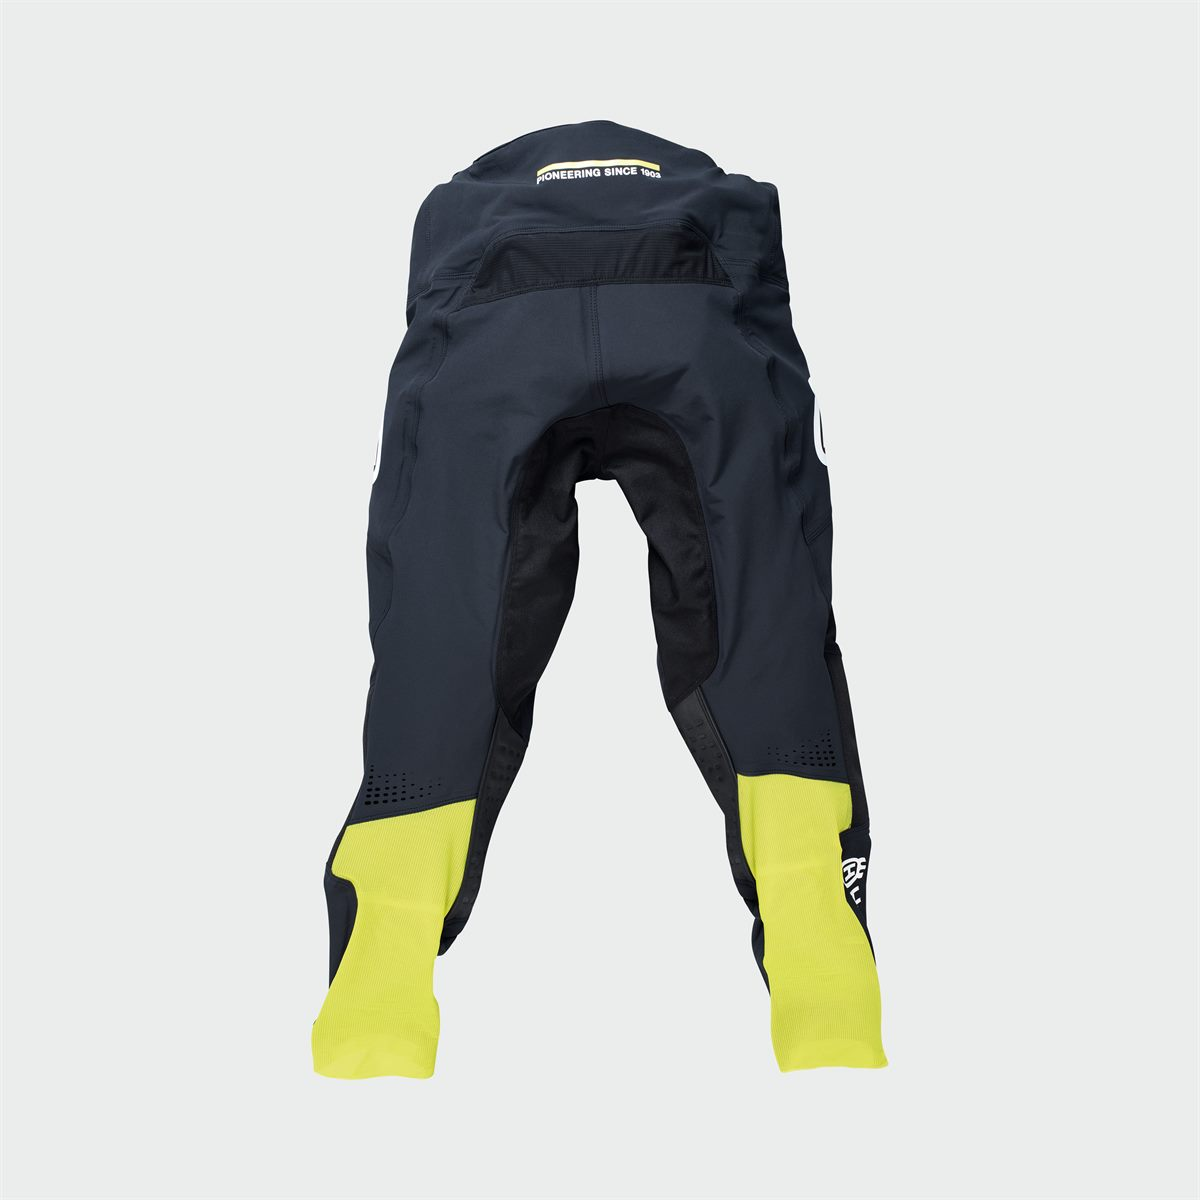 Husqvarna Motorcycles 2020 Functional Clothing Offroad Collection - RAILED PANTS